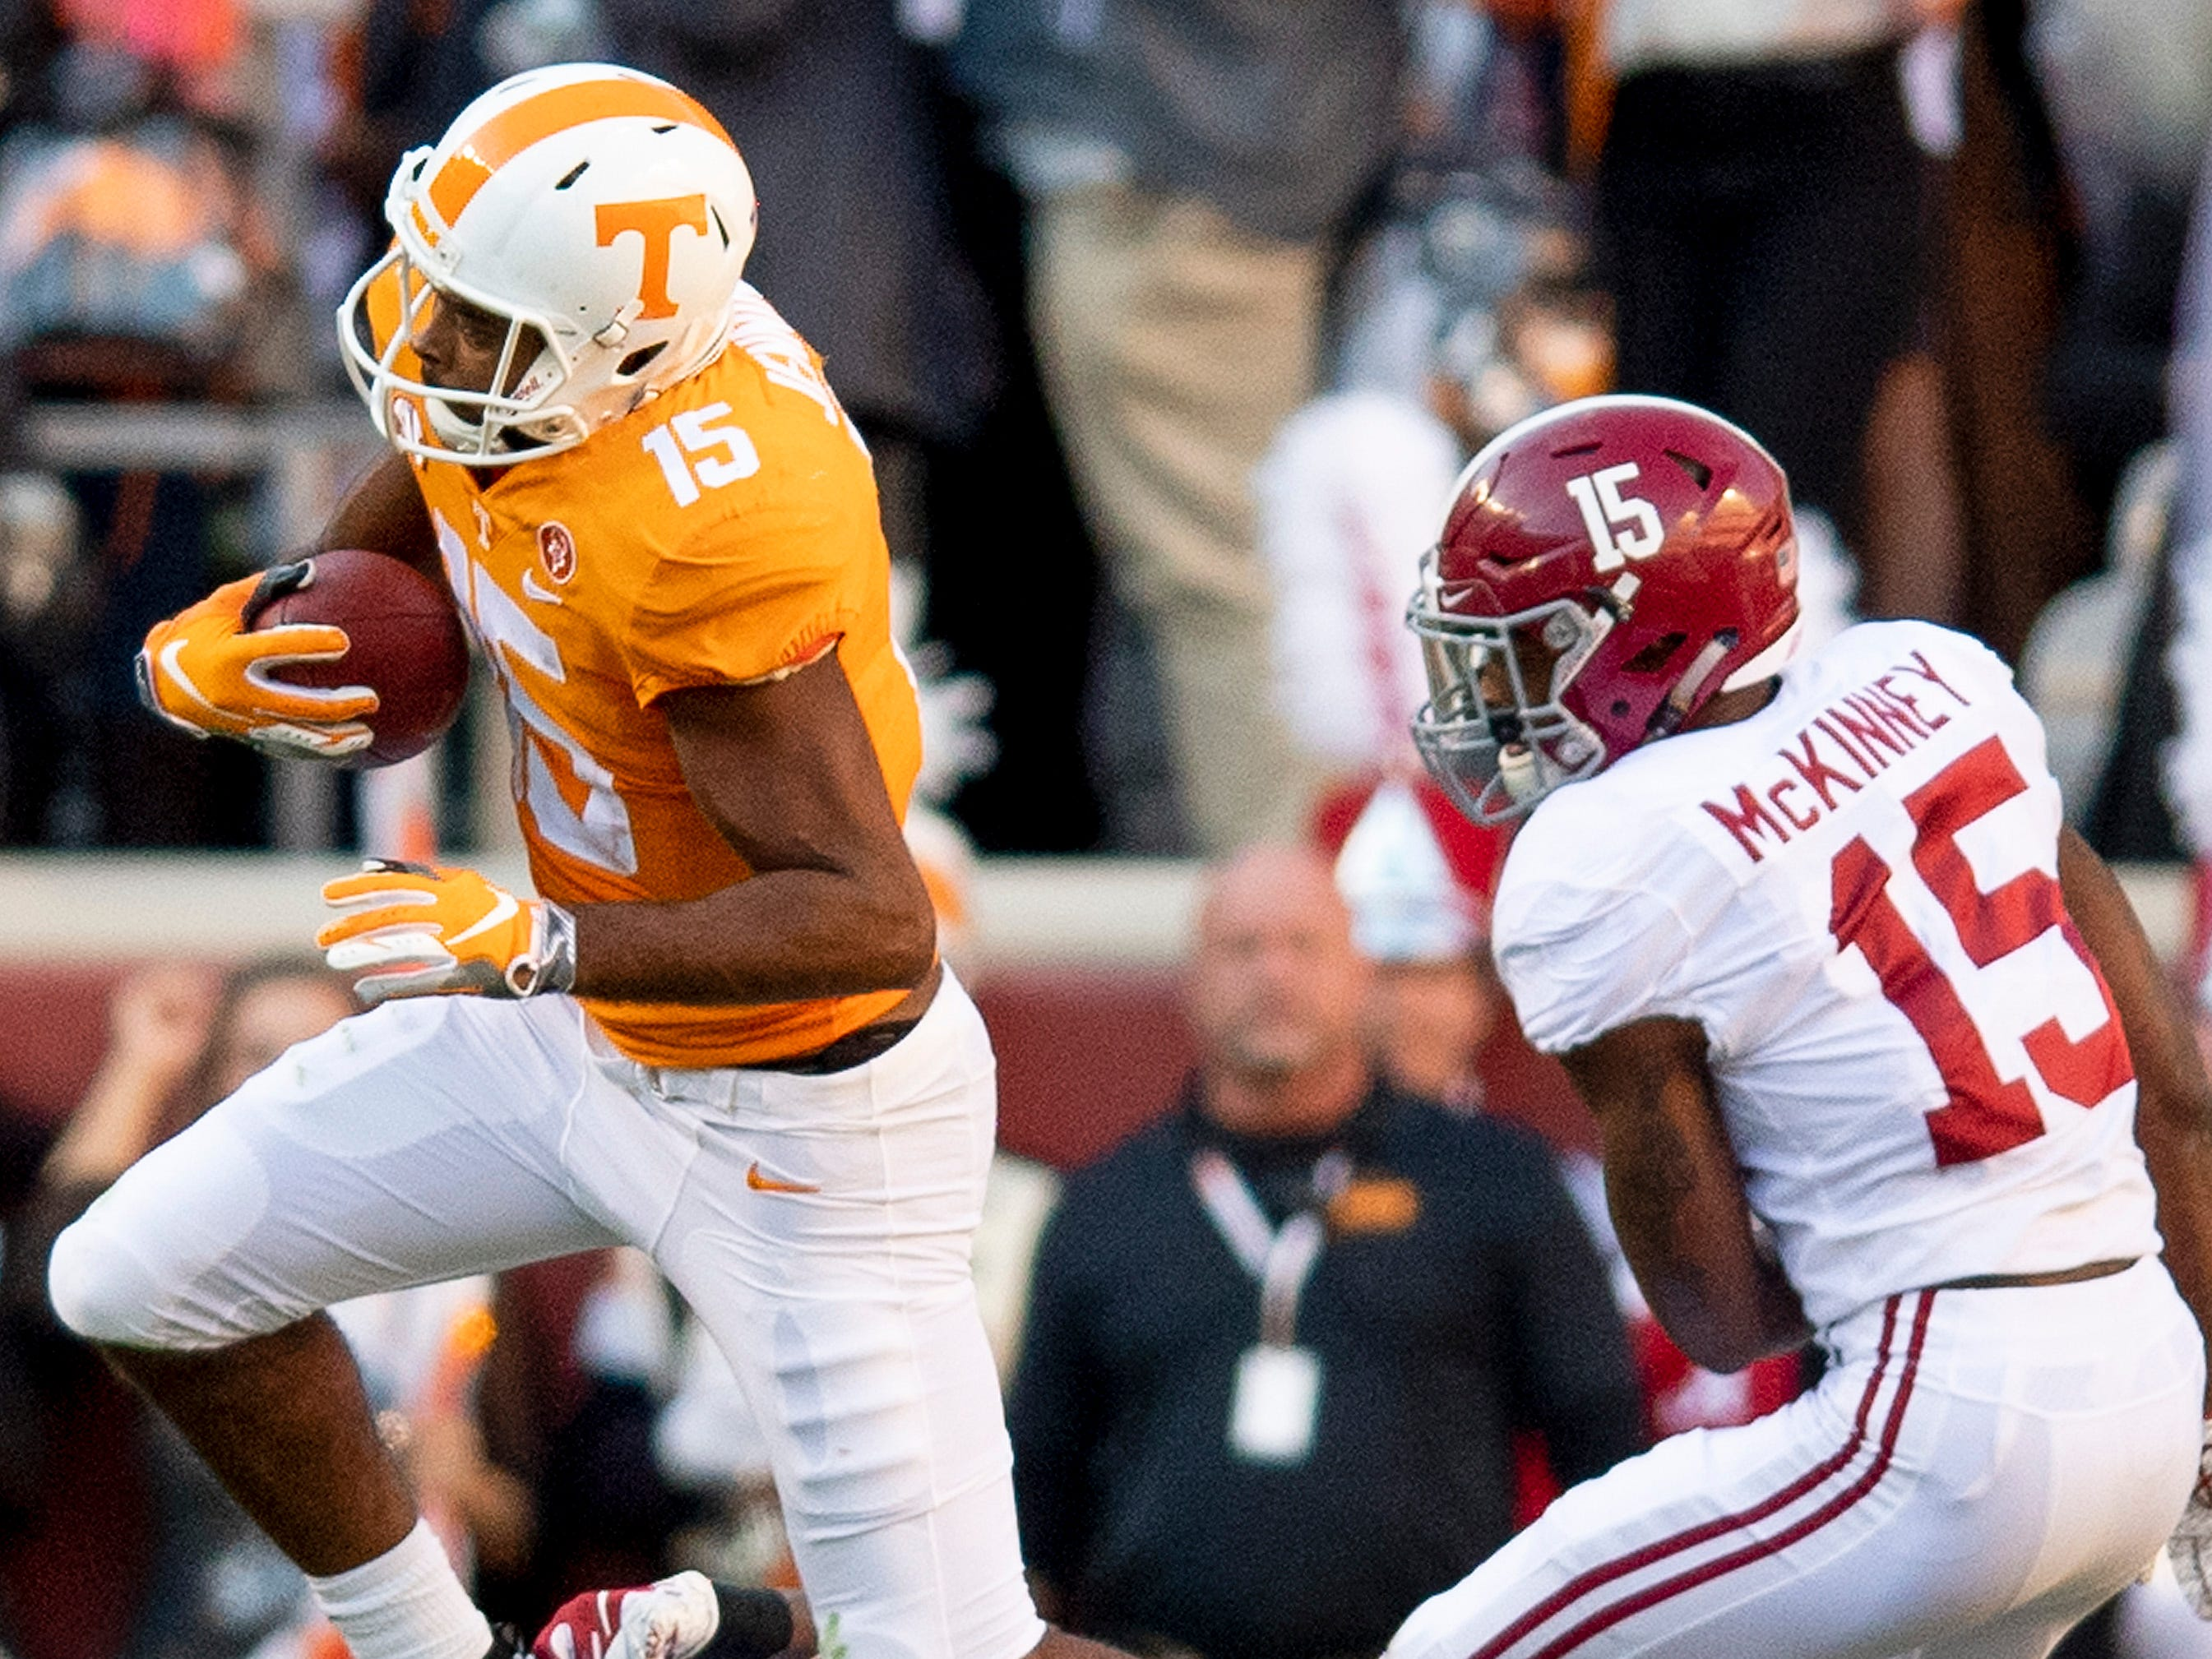 Tennessee wide receiver Jauan Jennings (15)  catches a pass against Alabama defensive backs Xavier McKinney (15) and Shyheim Carter (5) in first half action at Neyland Stadium in Knoxville, Tn., on Saturday October 20, 2018.